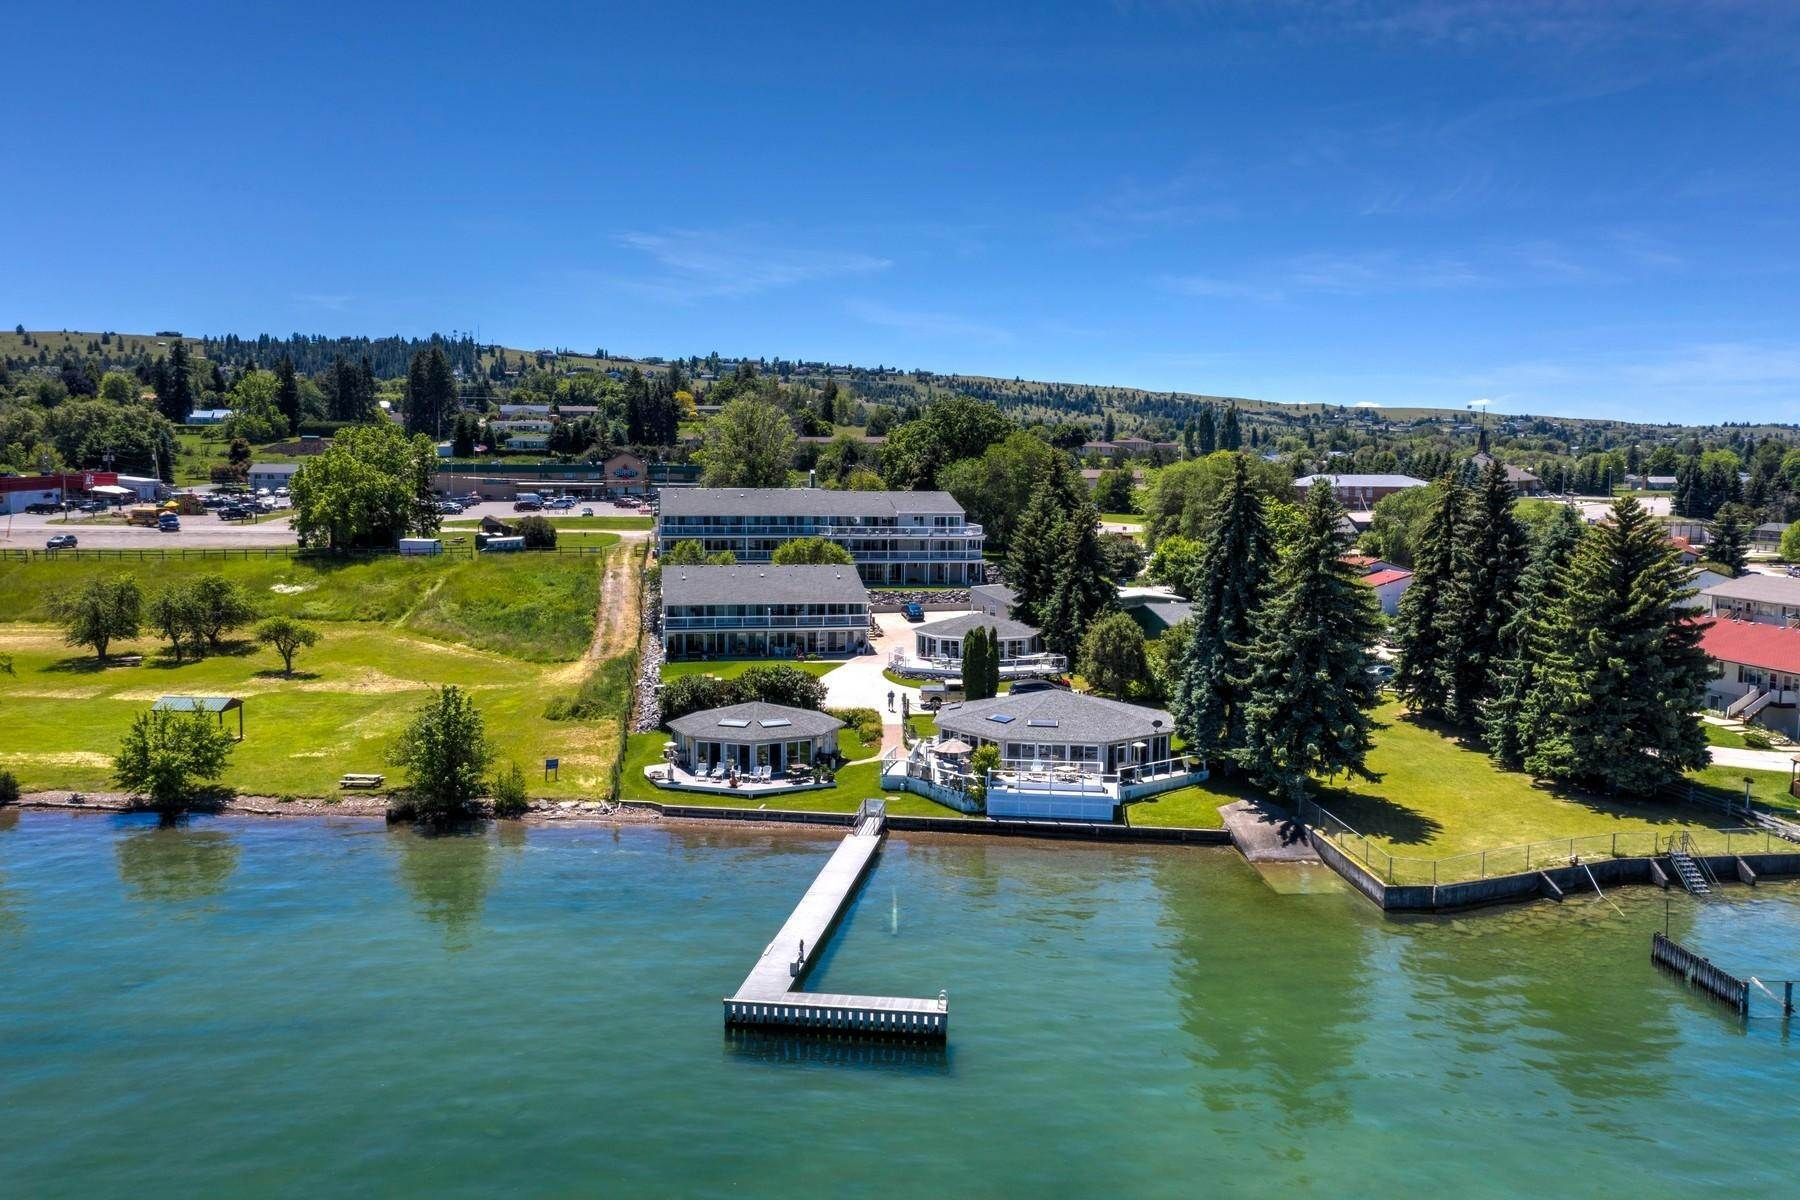 Multi-Family Homes for Sale at Lake Place Condos 50300 Us Hwy 93 Polson, Montana 59860 United States